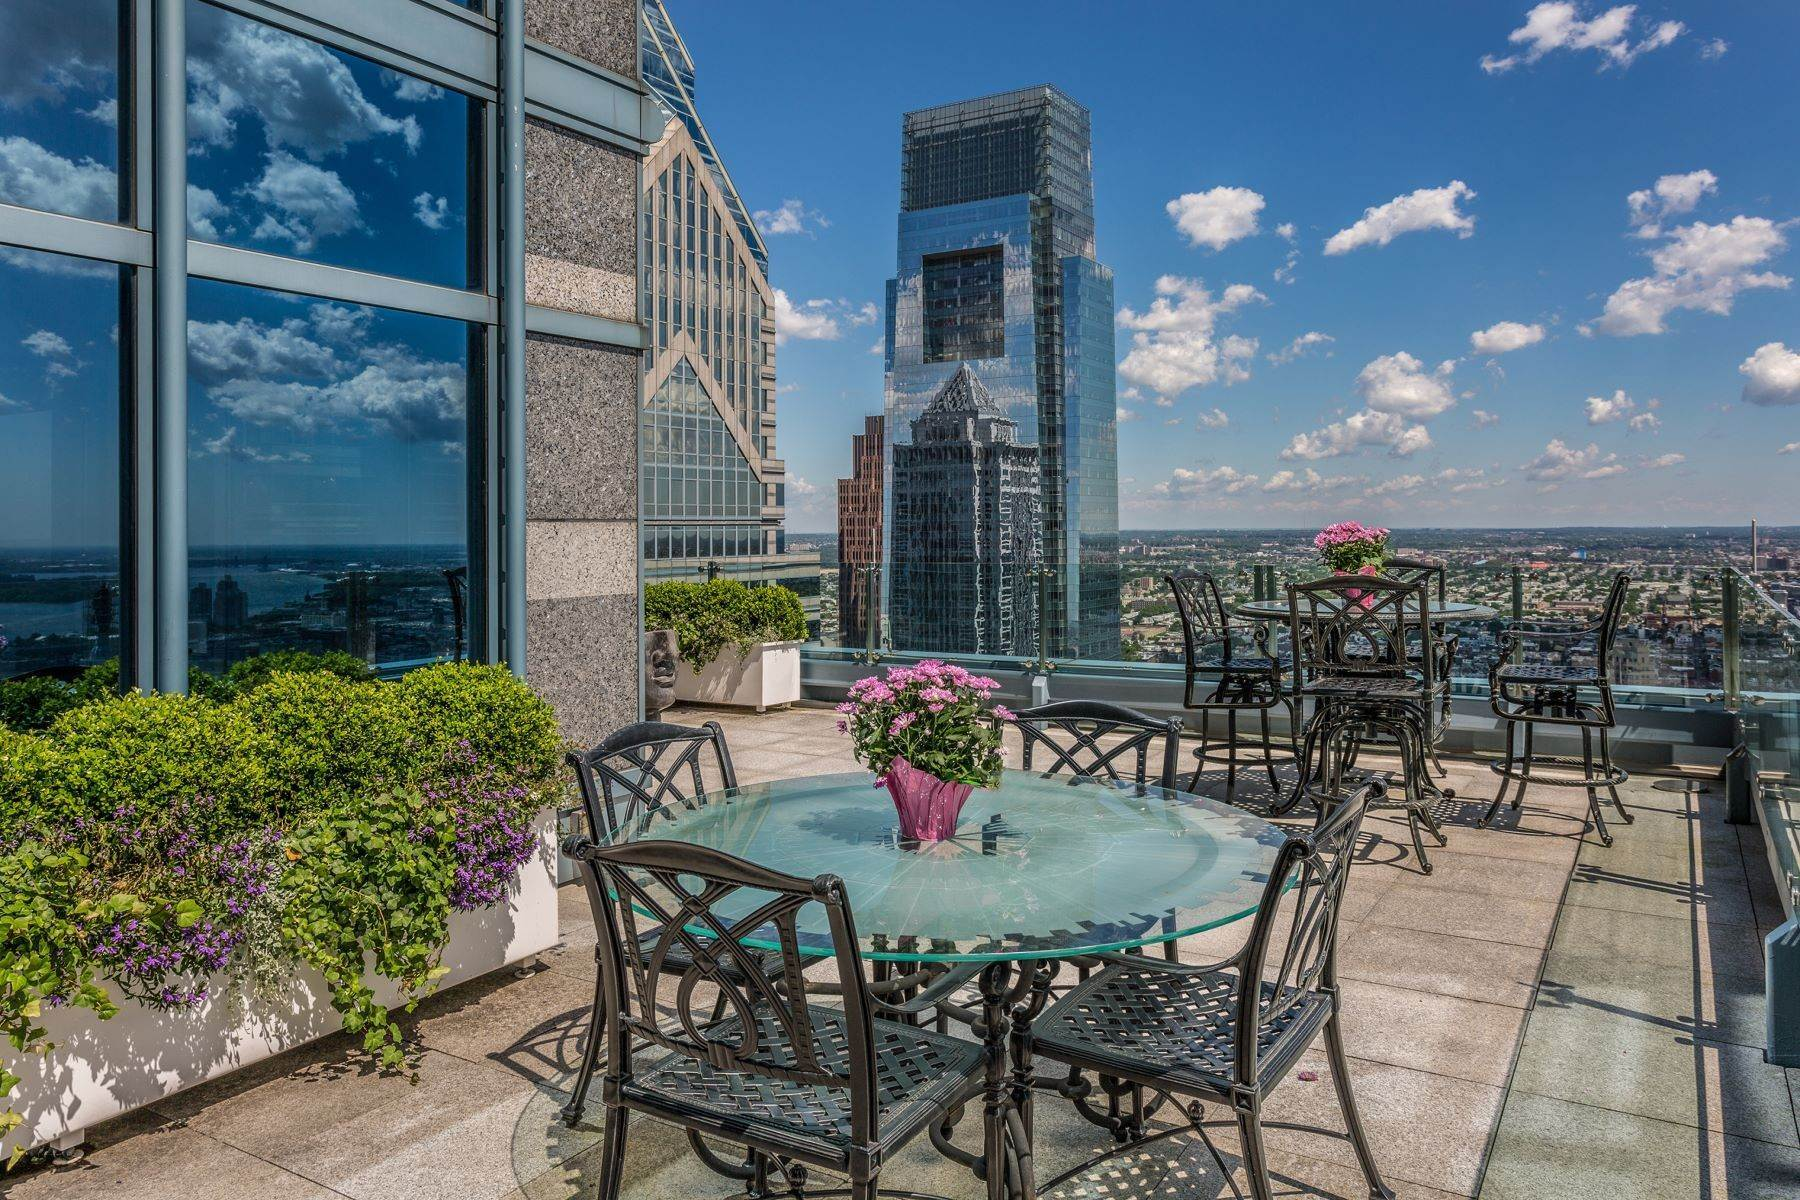 Property for Sale at 50 S 16TH ST #4604, 4604 Philadelphia, Pennsylvania 19102 United States